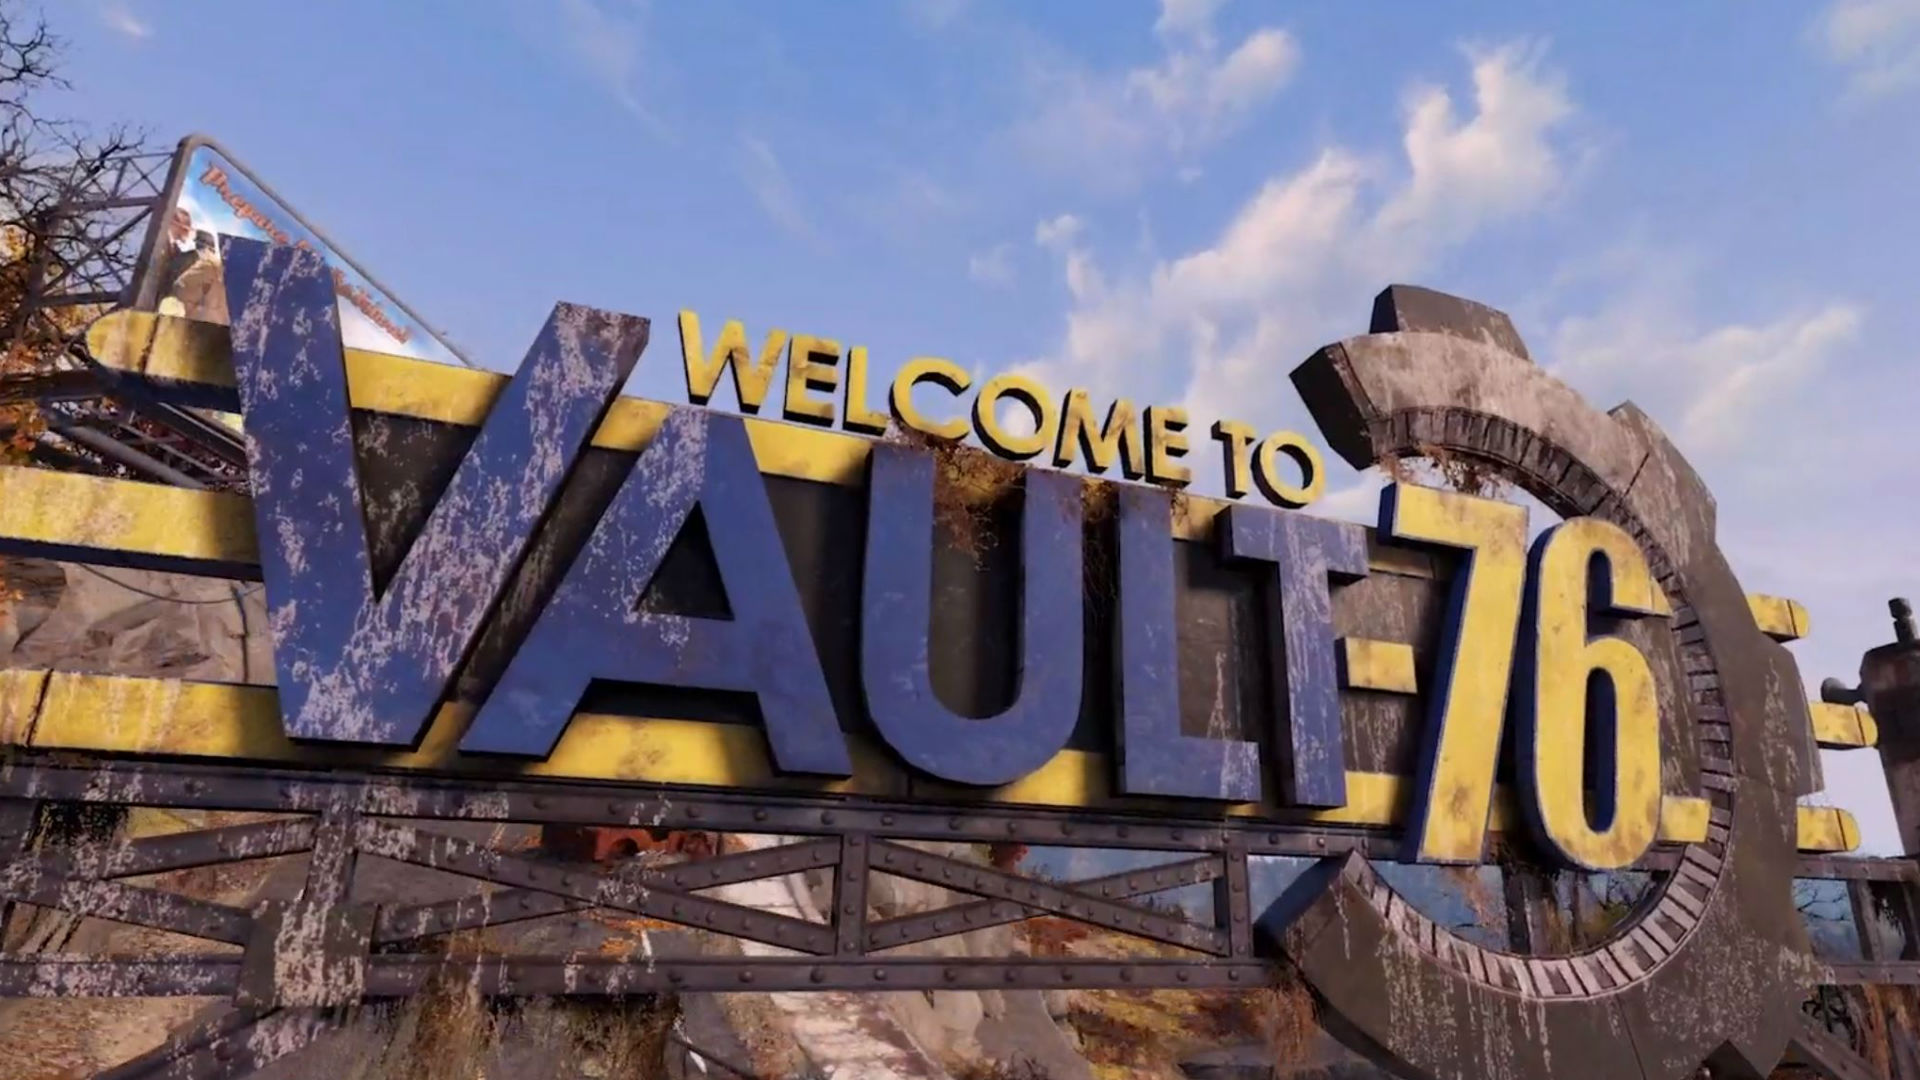 Fallout 76 Season 4 rewards have been unveiled